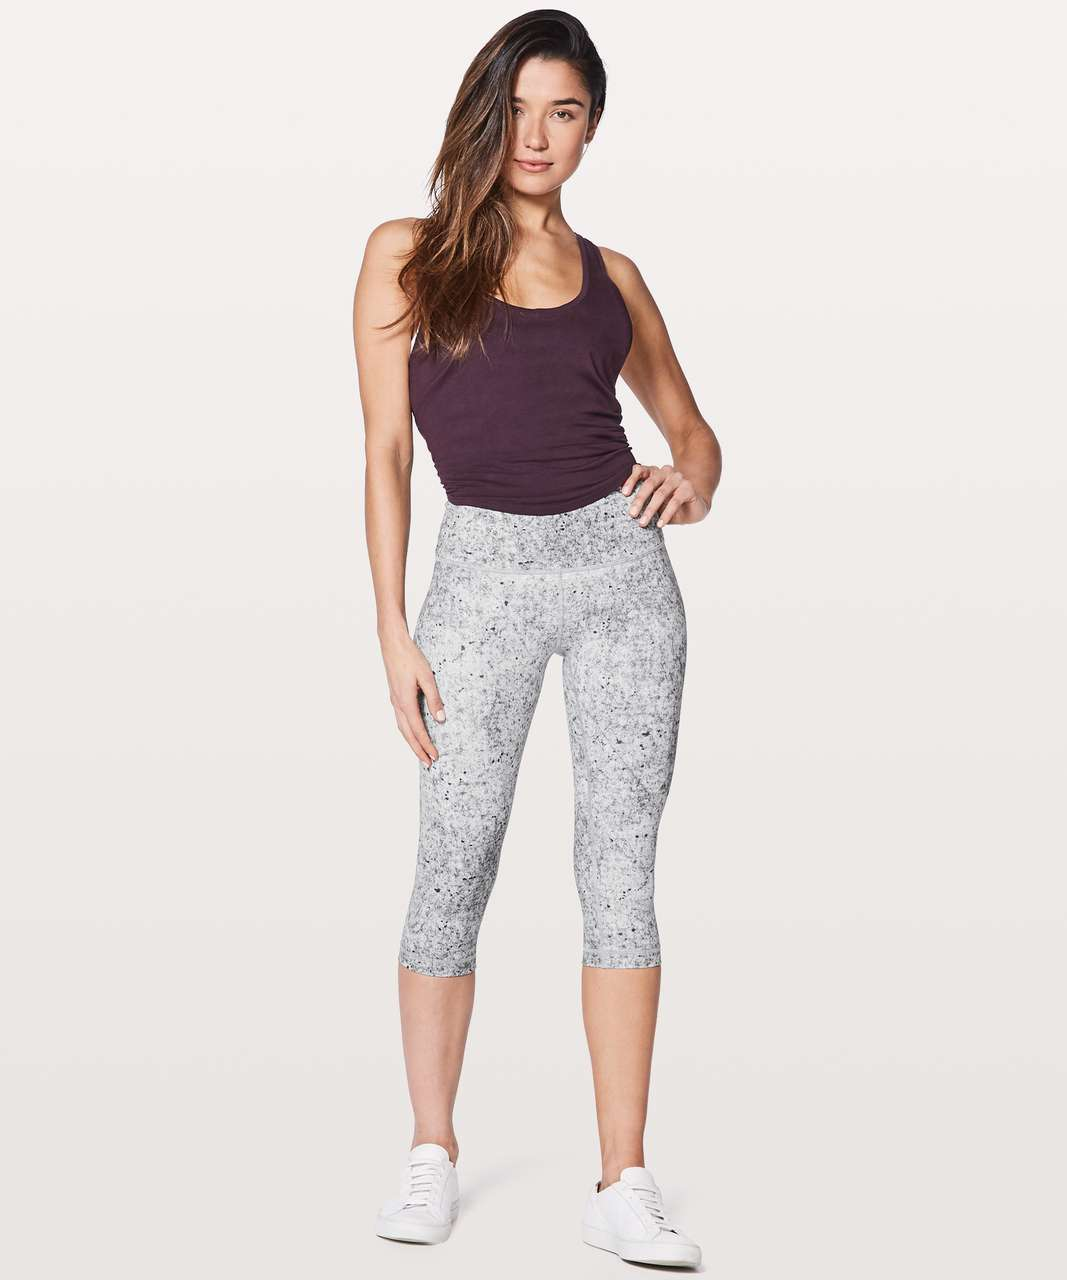 "Lululemon Wunder Under Hi-Rise 1/2 Tight 17"" - Antiqued Alpine White Multi"